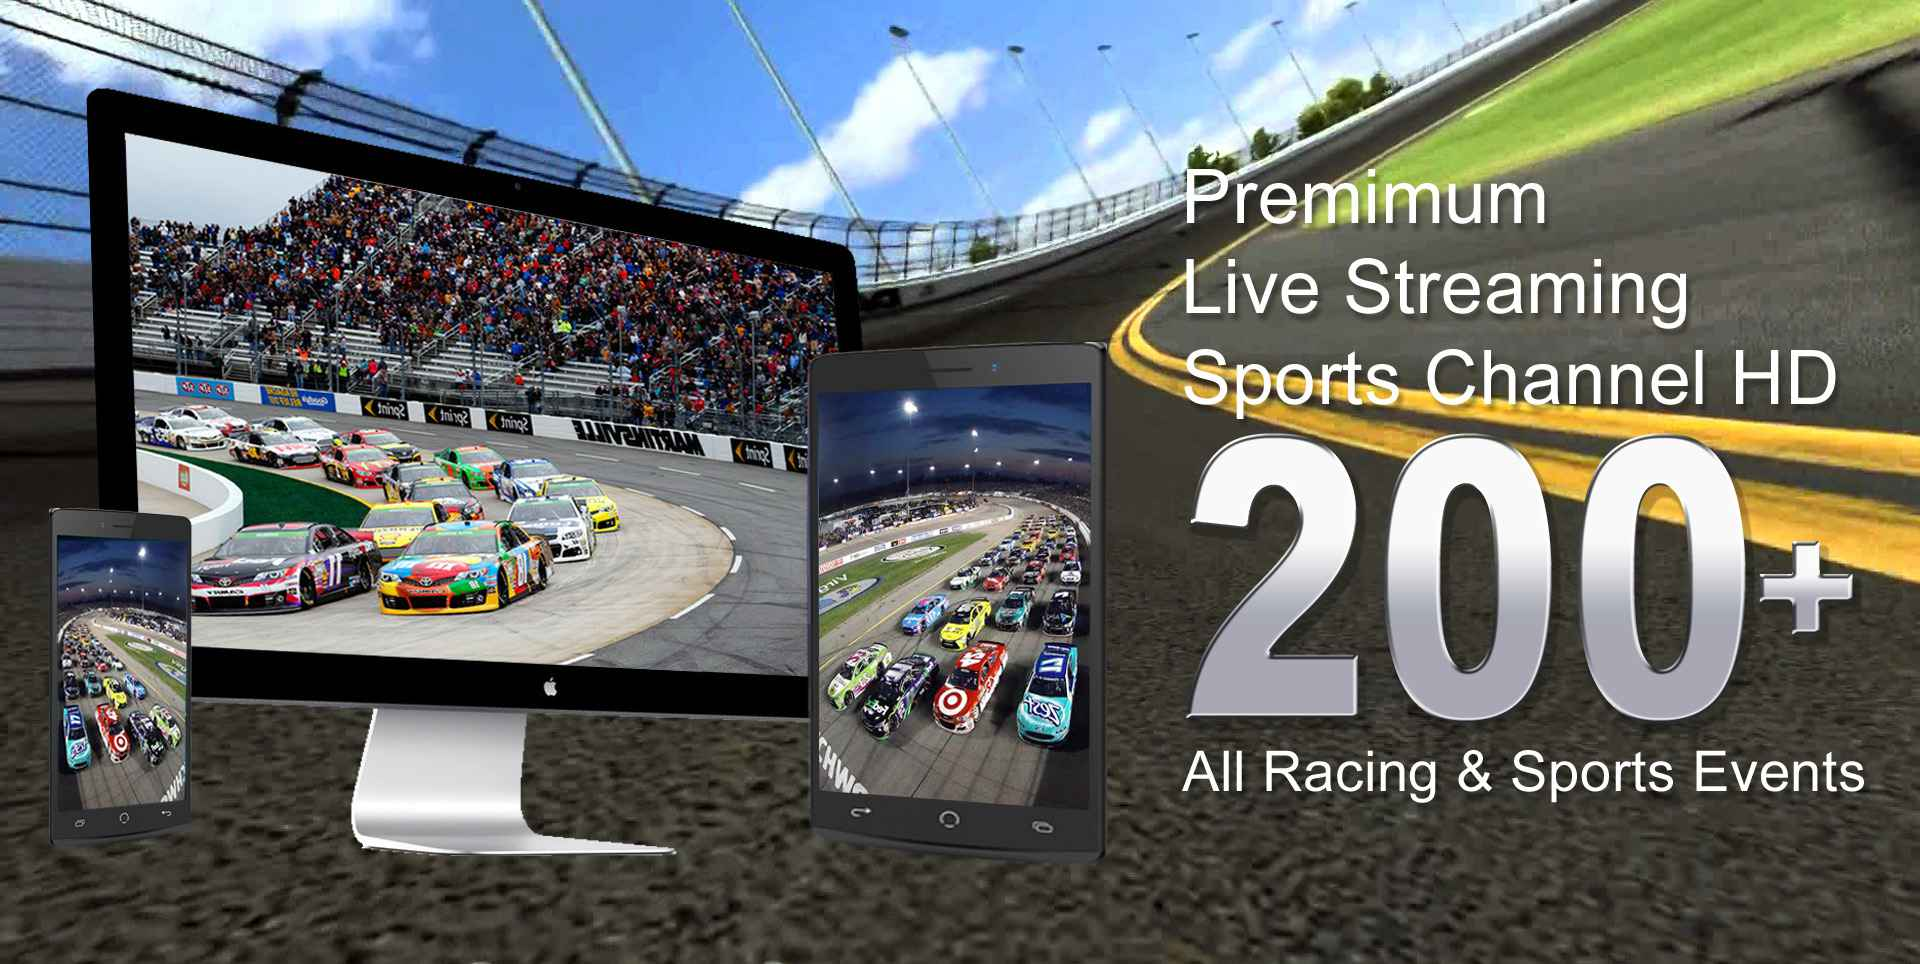 2016 Nascar Pocono Mountains 150 live